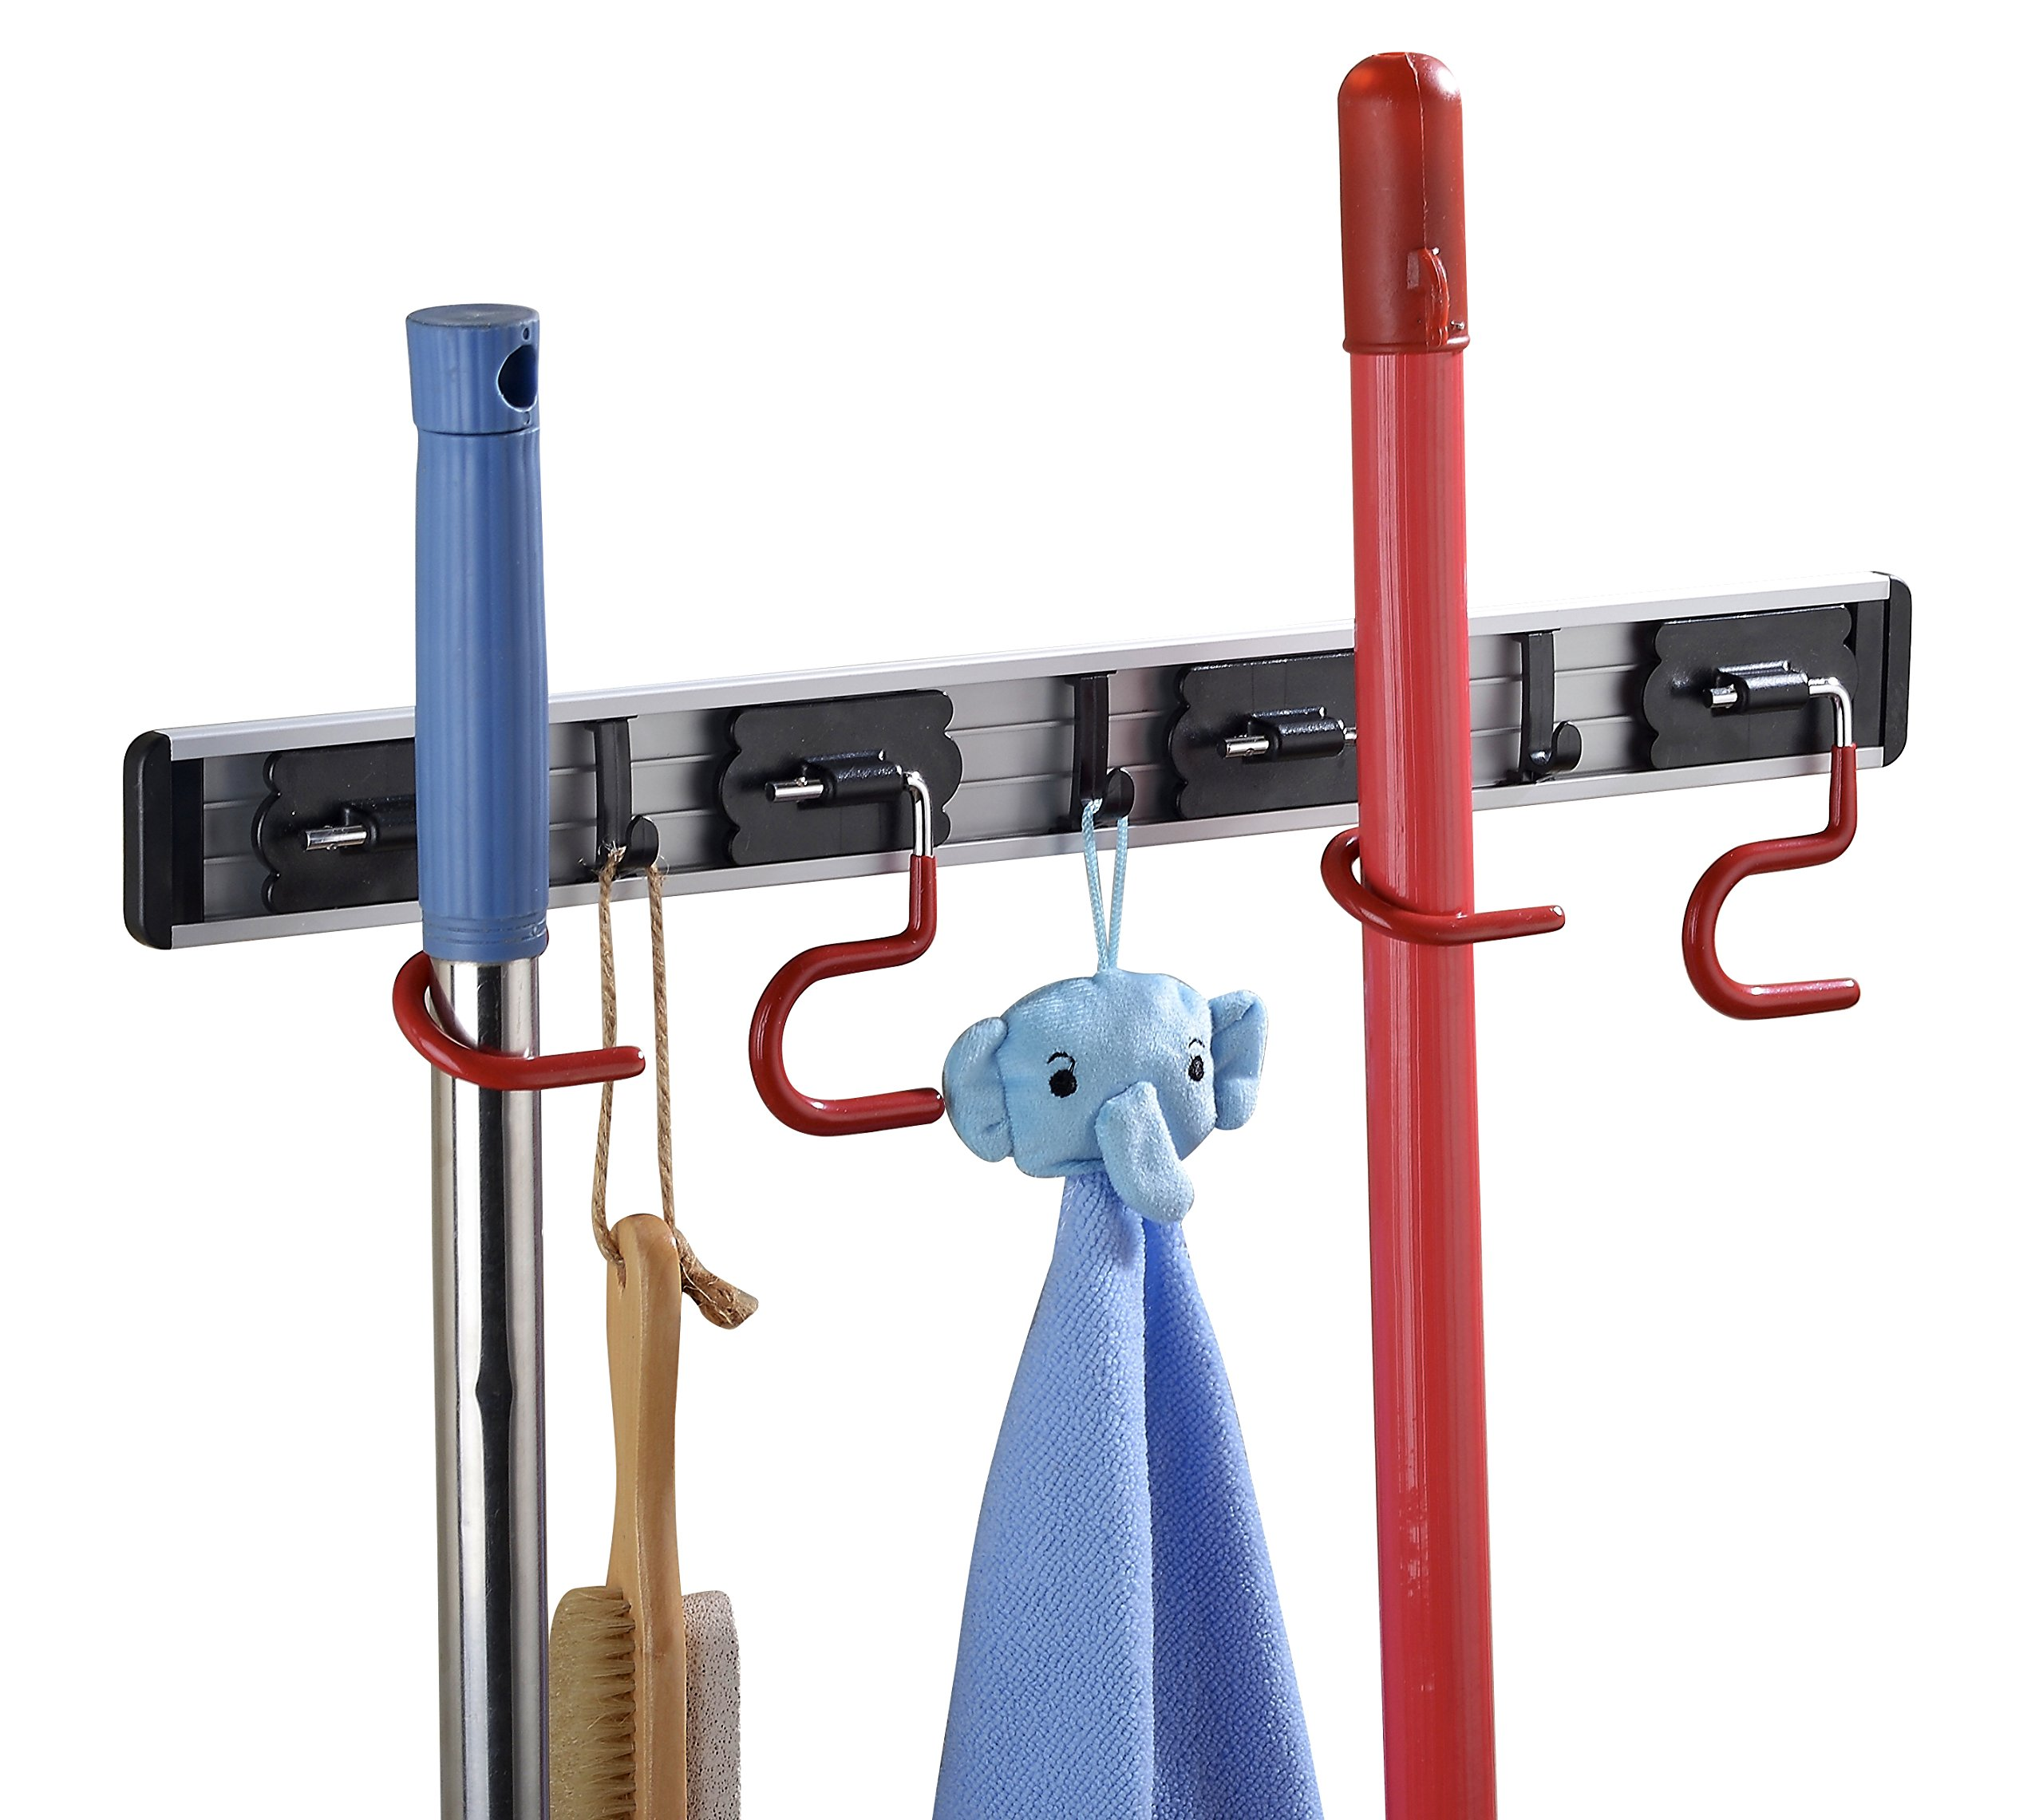 Cavoli Mop Broom Holder Wall Mounted S Type,Garage Storage Holds Up to 7 Tools and Over 50 pounds 17.5 Inches,Base Made by Aluminum Metal (4 Positions and 3 Hooks)